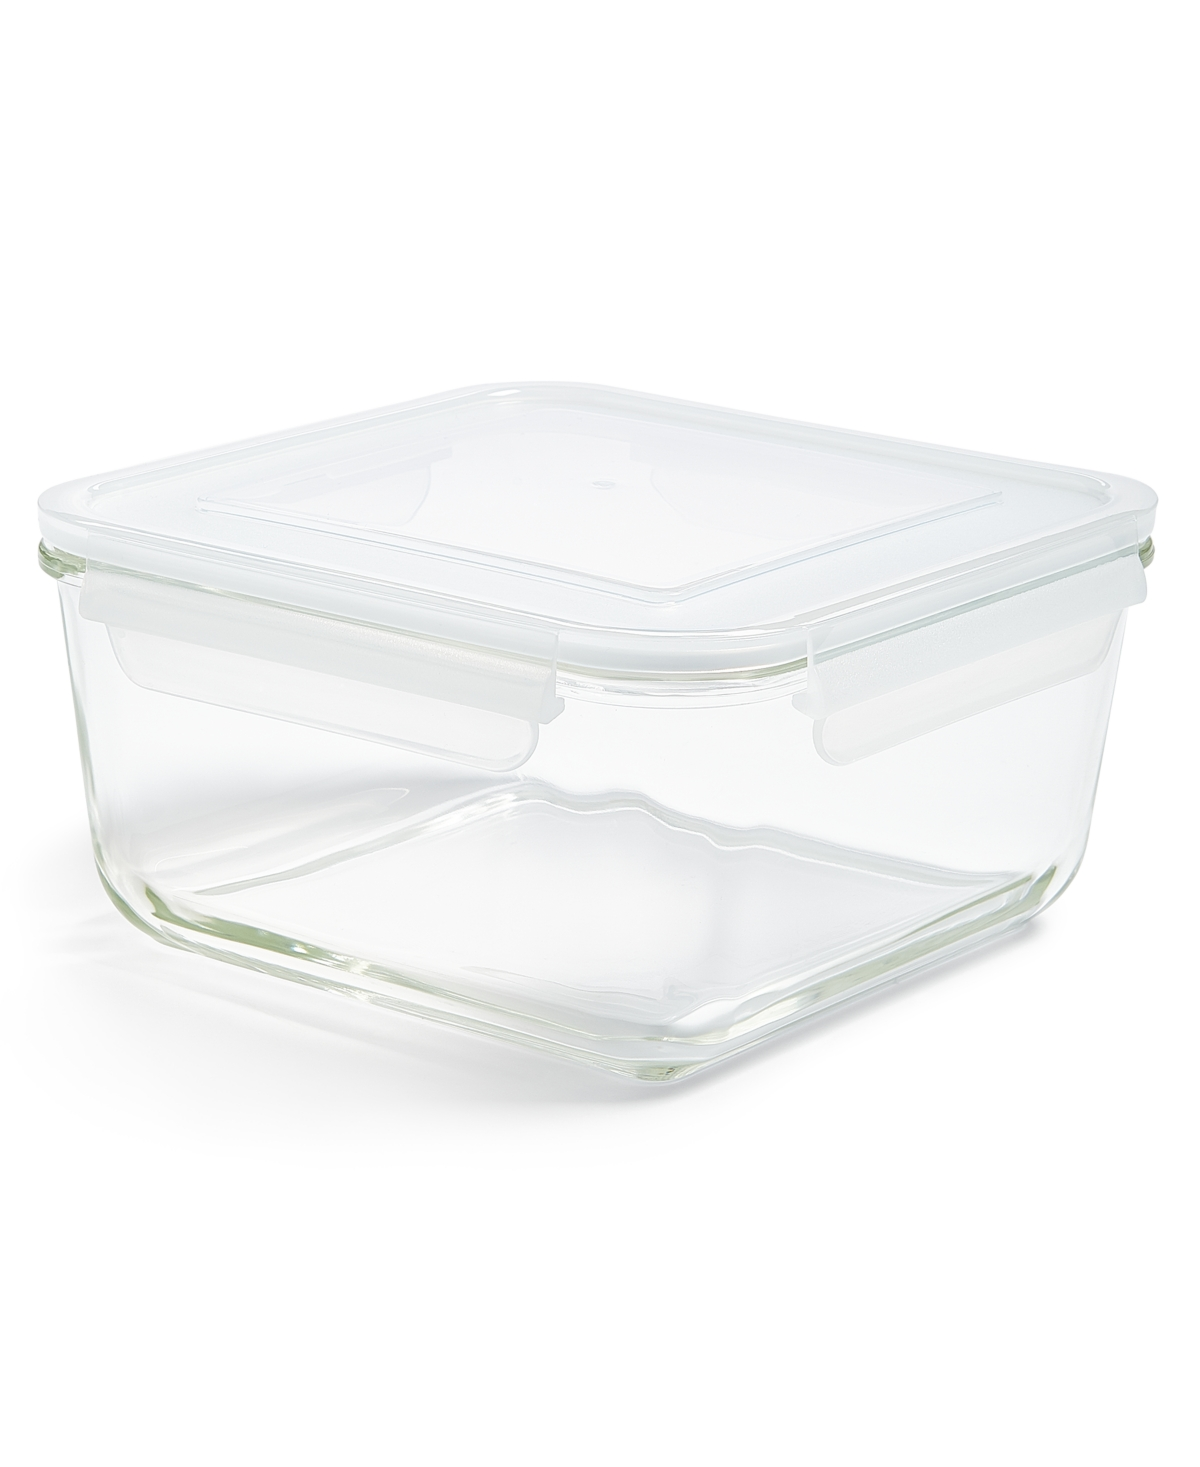 Martha Stewart Collection 9.3-Cup Square Glass Food Storage Container, Created for Macy's